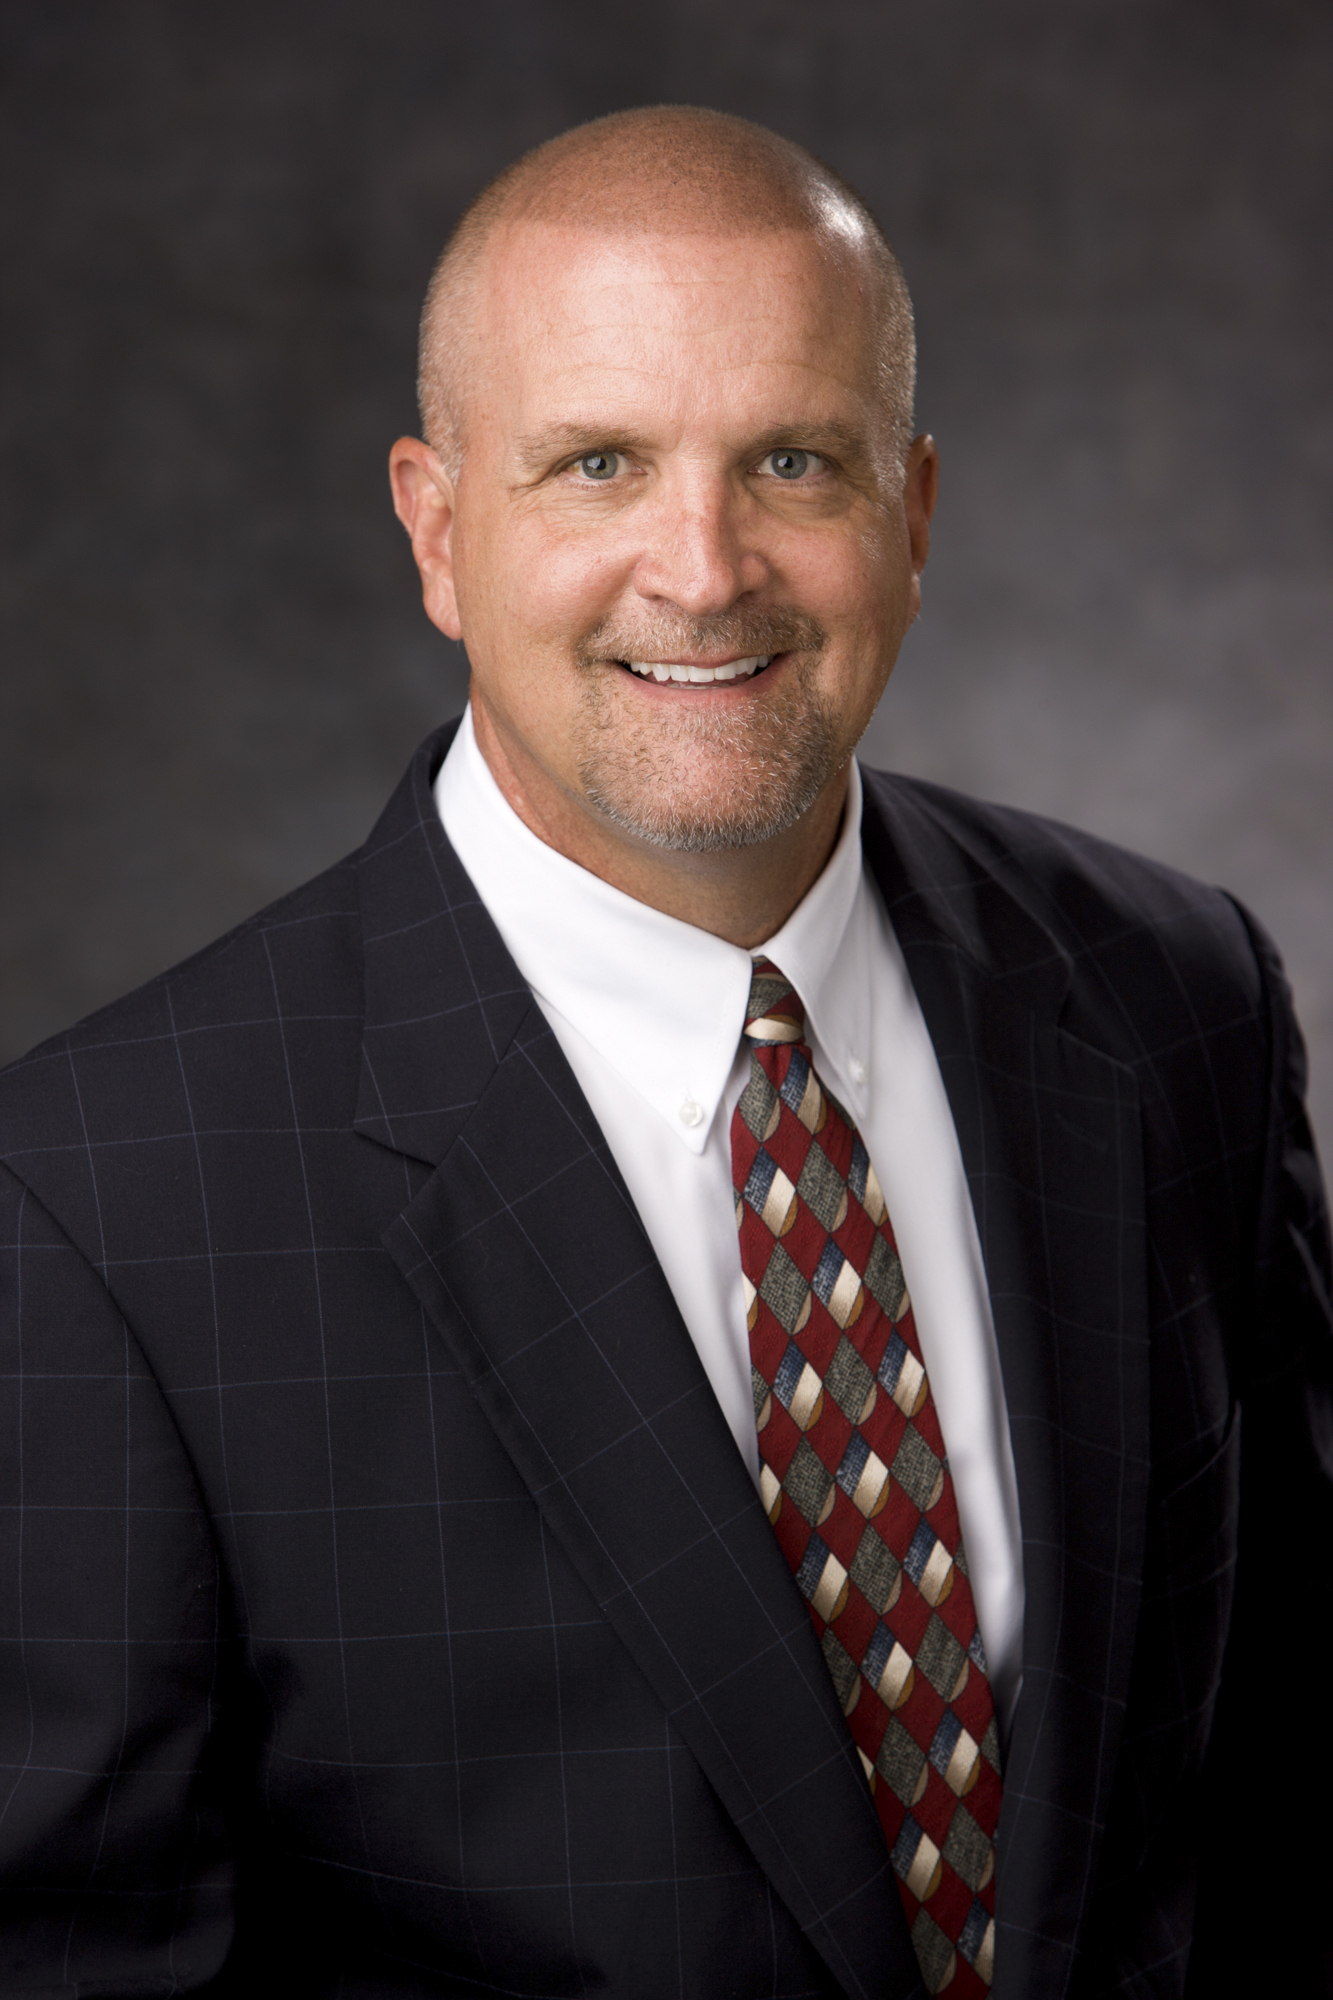 Jeffrey A. Cruey Promoted to Divisional President of Great American Insurance Group (Photo: Business Wire)